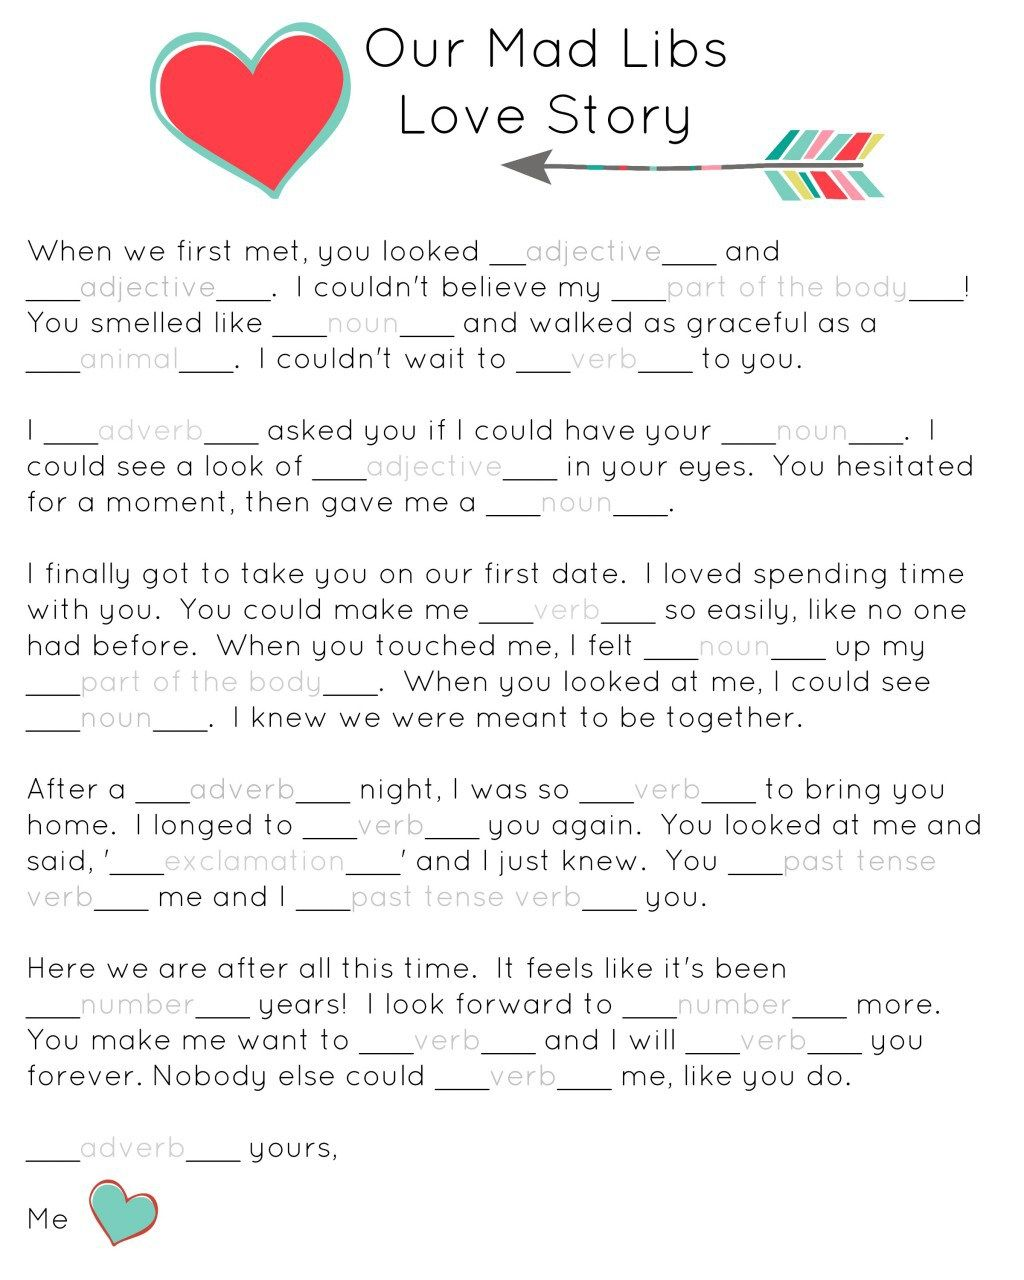 Our Mad Libs Love Story Free Printable And Laughs